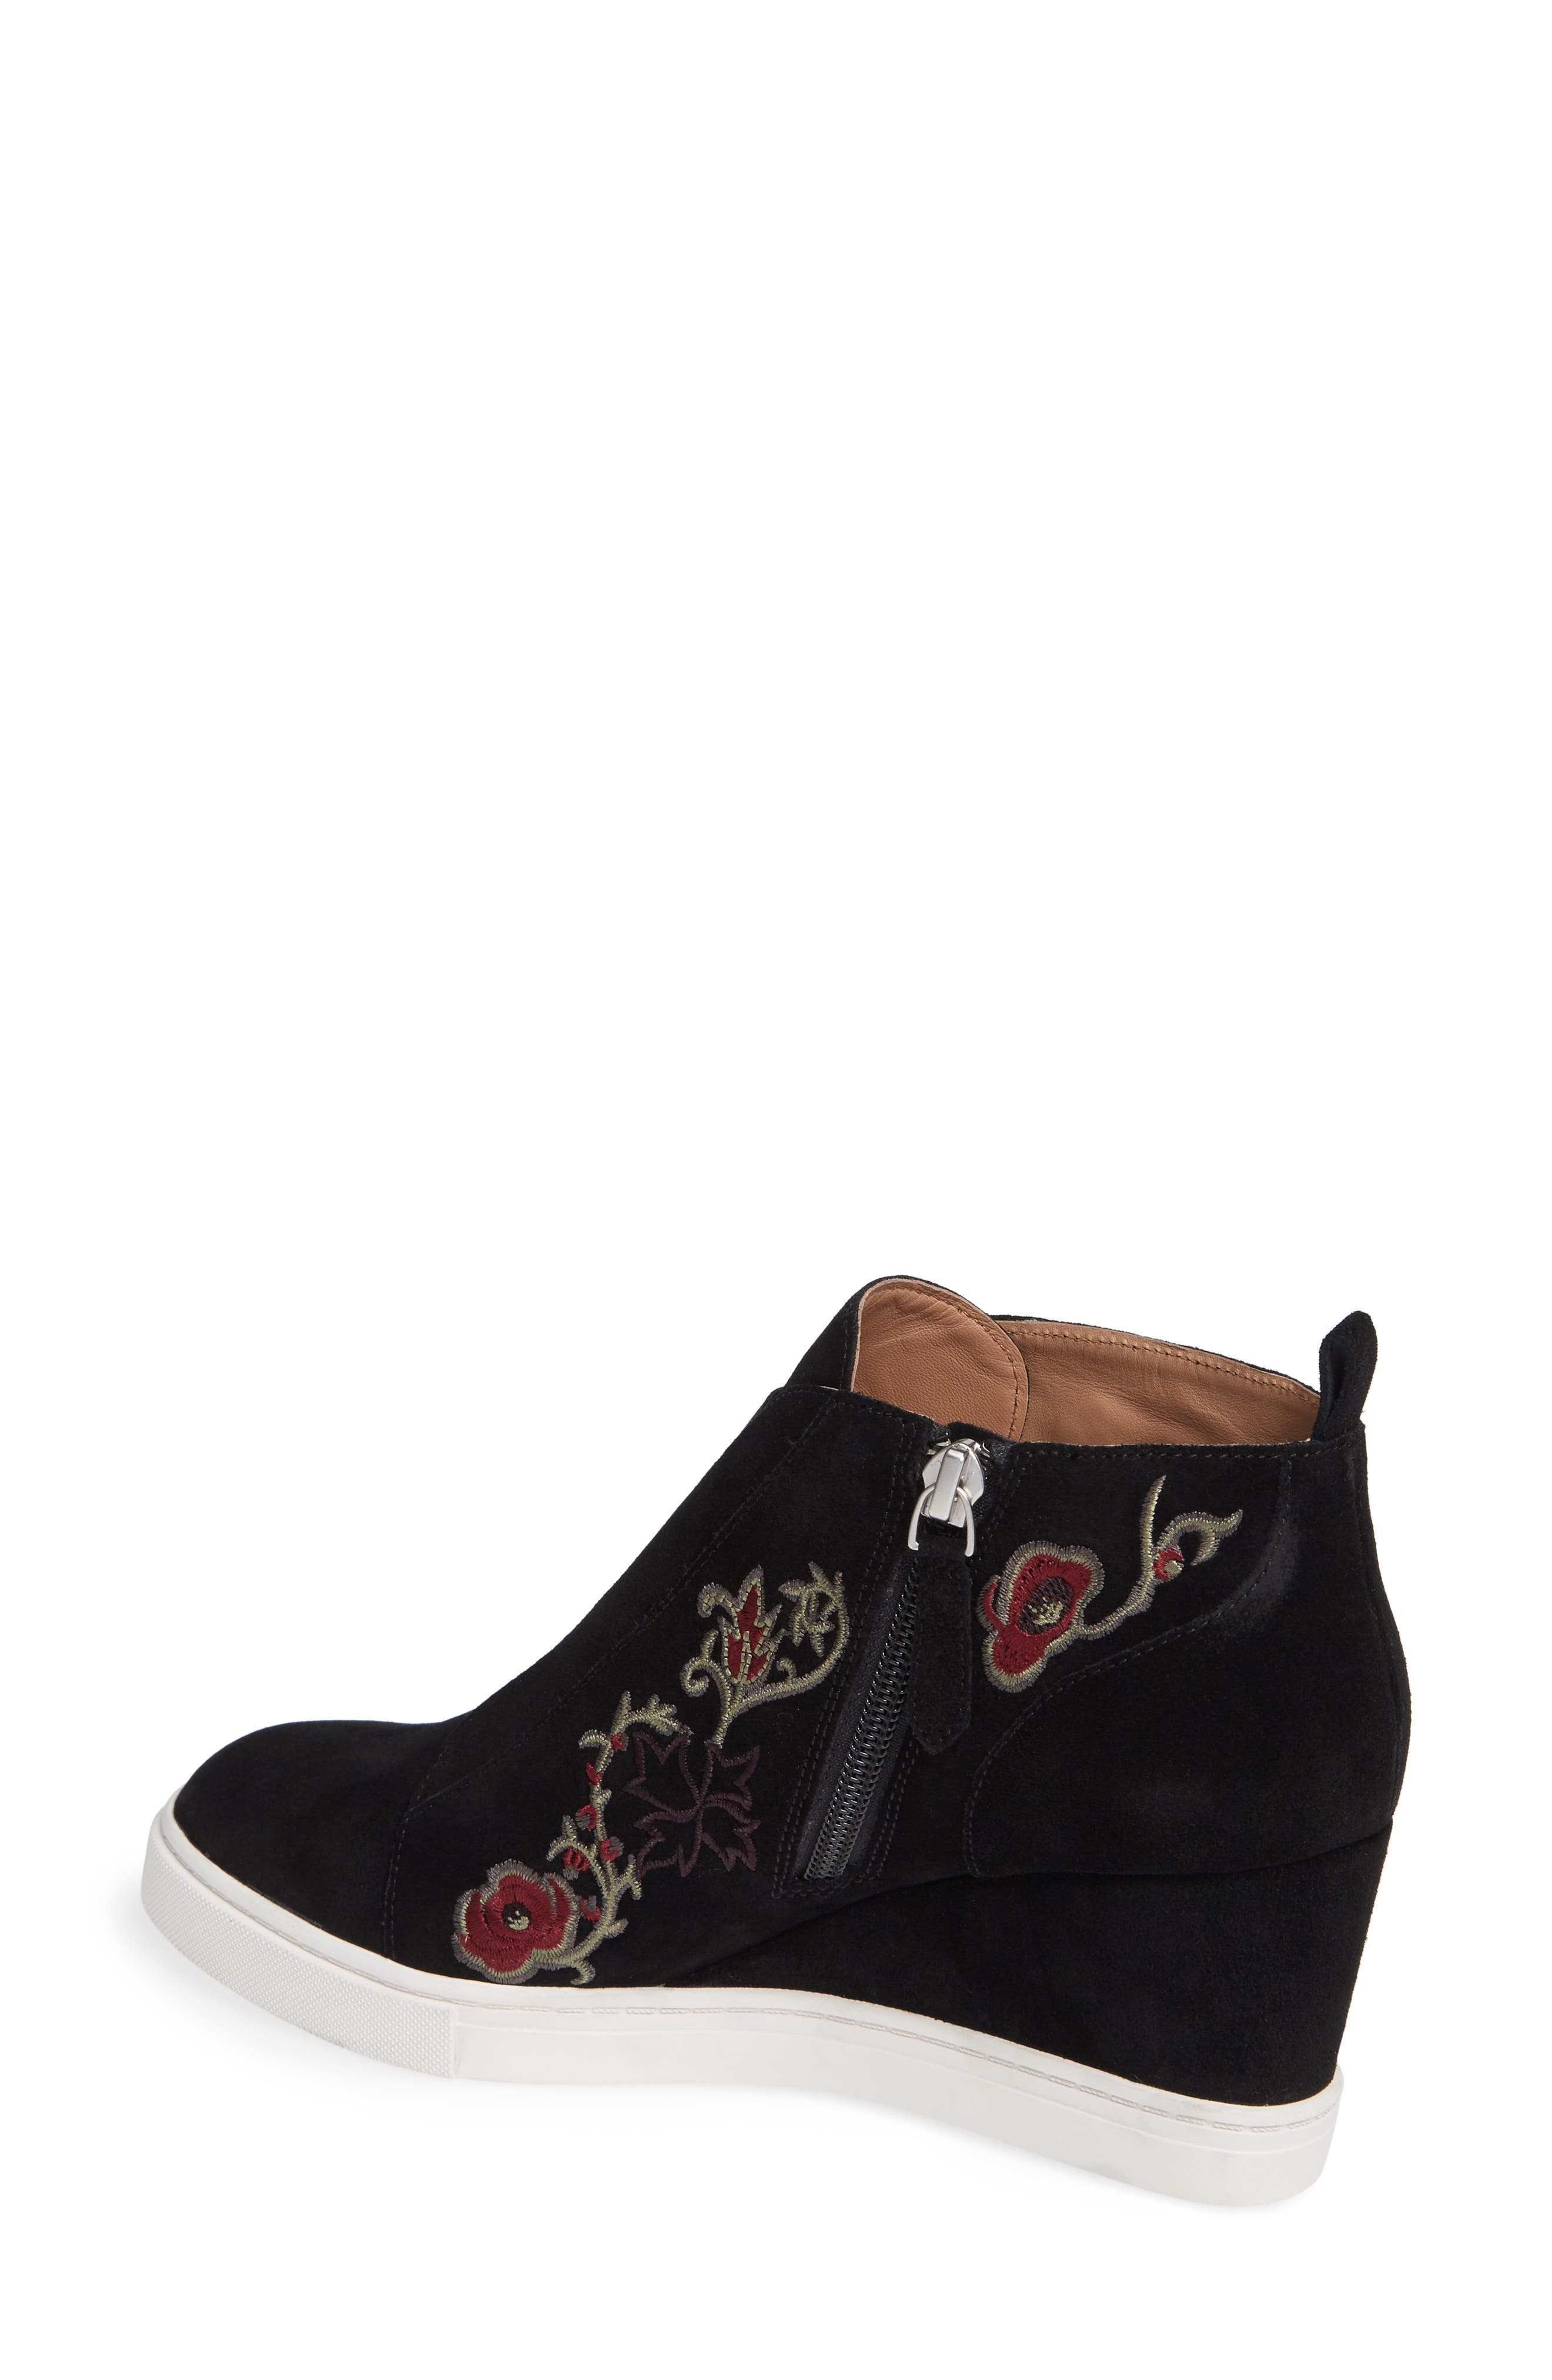 Felicia II Wedge Bootie,                             Alternate thumbnail 2, color,                             BLACK/ BLACK EMBROIDERY SUEDE